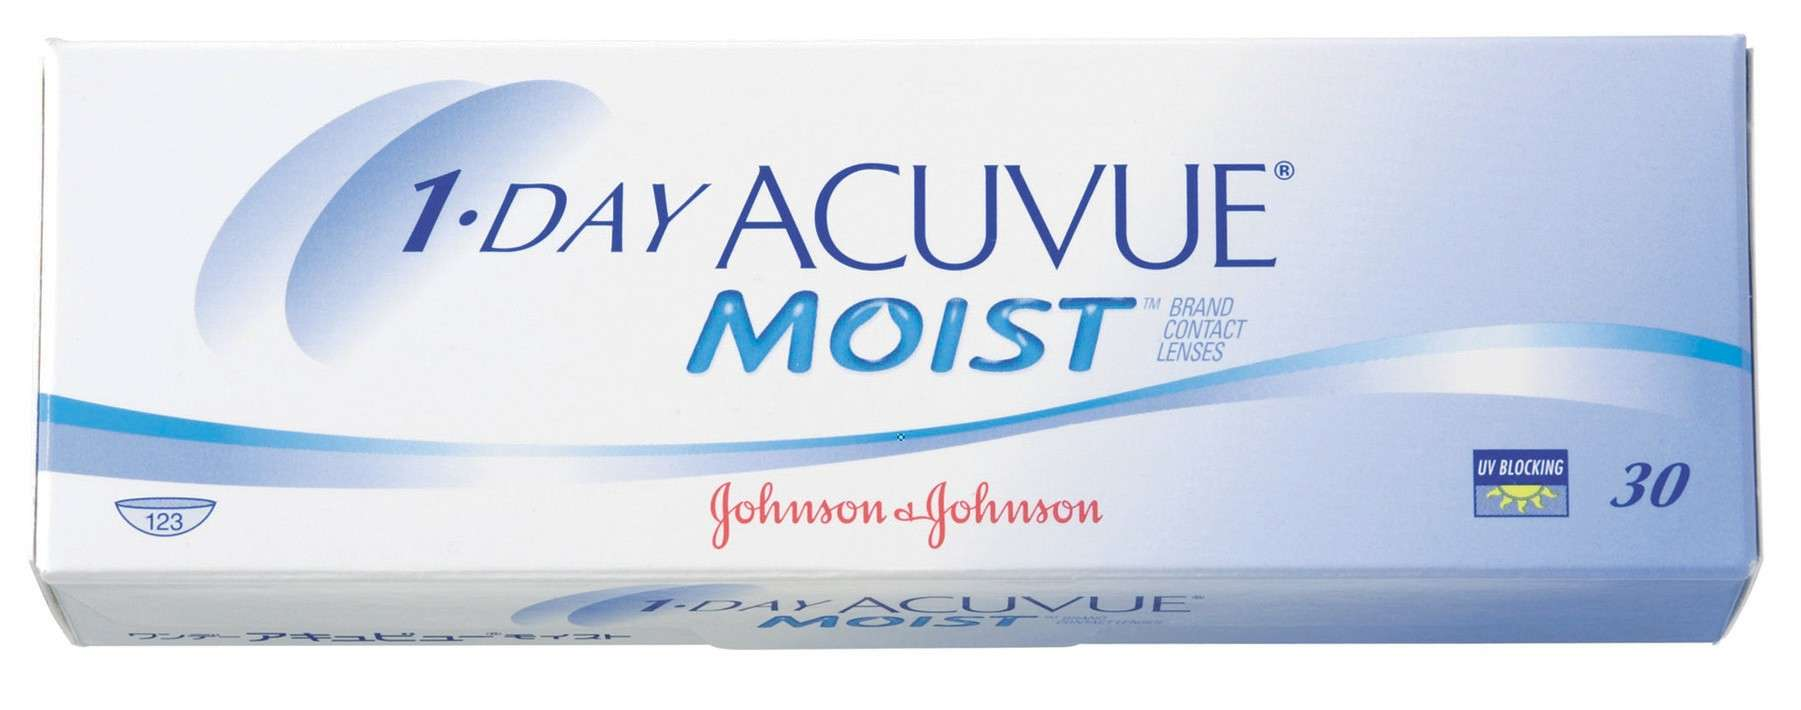 Acuvue-1-one-day-moist Marcas que trabajamos